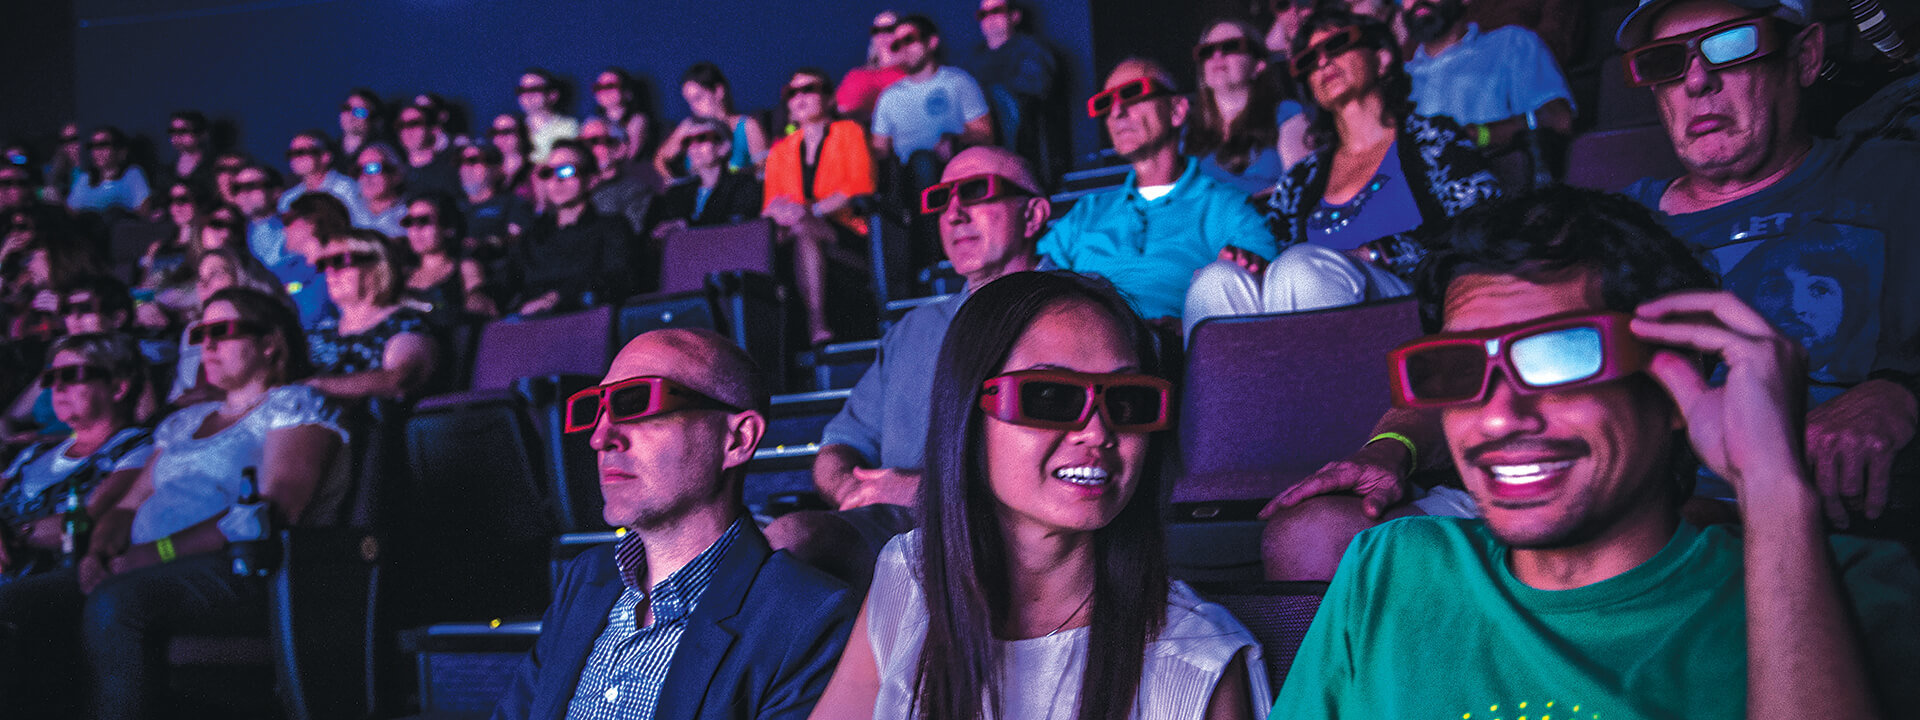 Crowd of guests in theater wearing 3D glasses enjoying a movie.